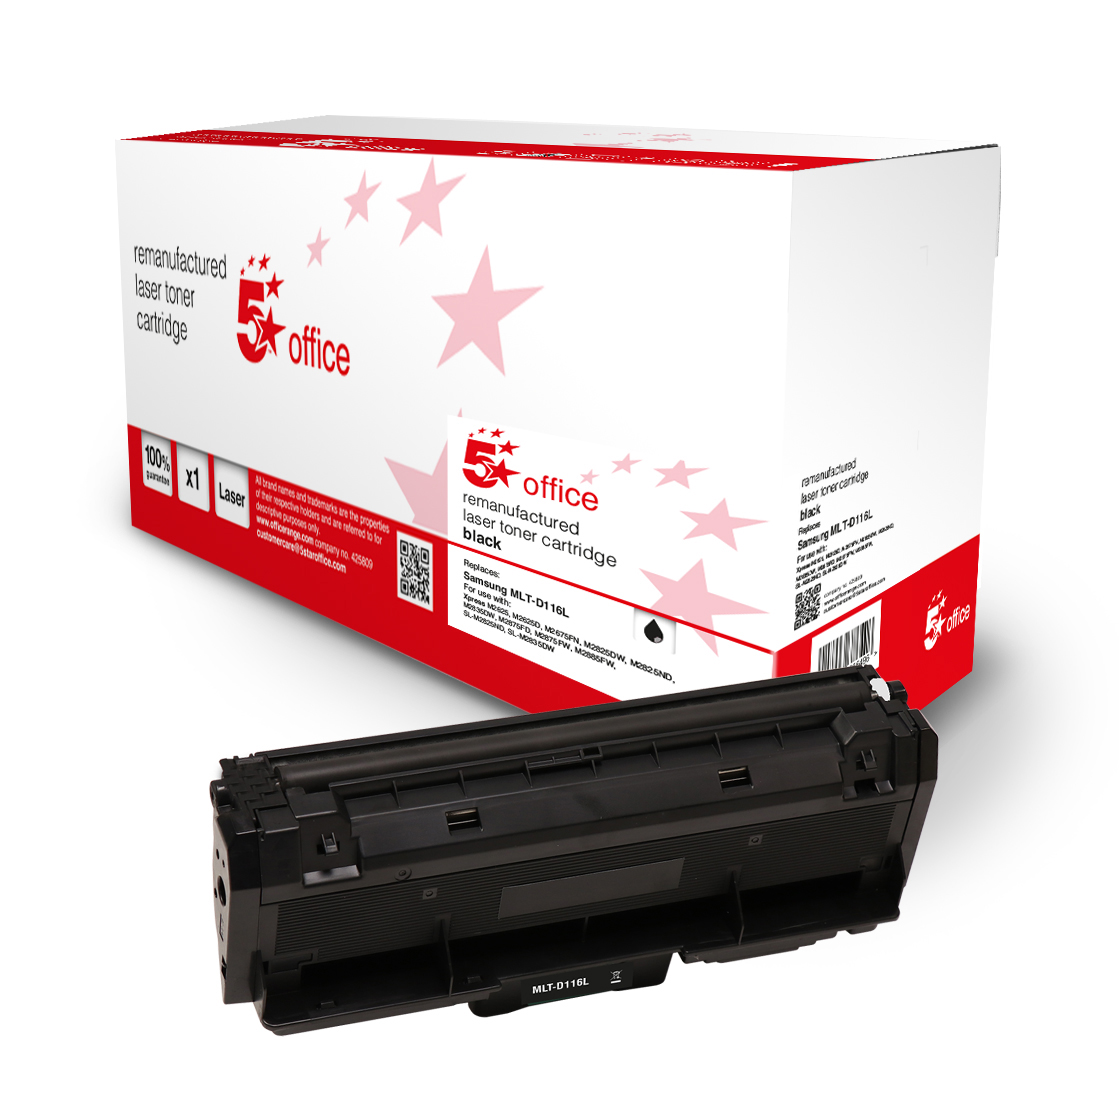 5 Star Office Remanufactured Toner Cartridge Page Life Black 3000pp [Samsung SU828A Alternative]